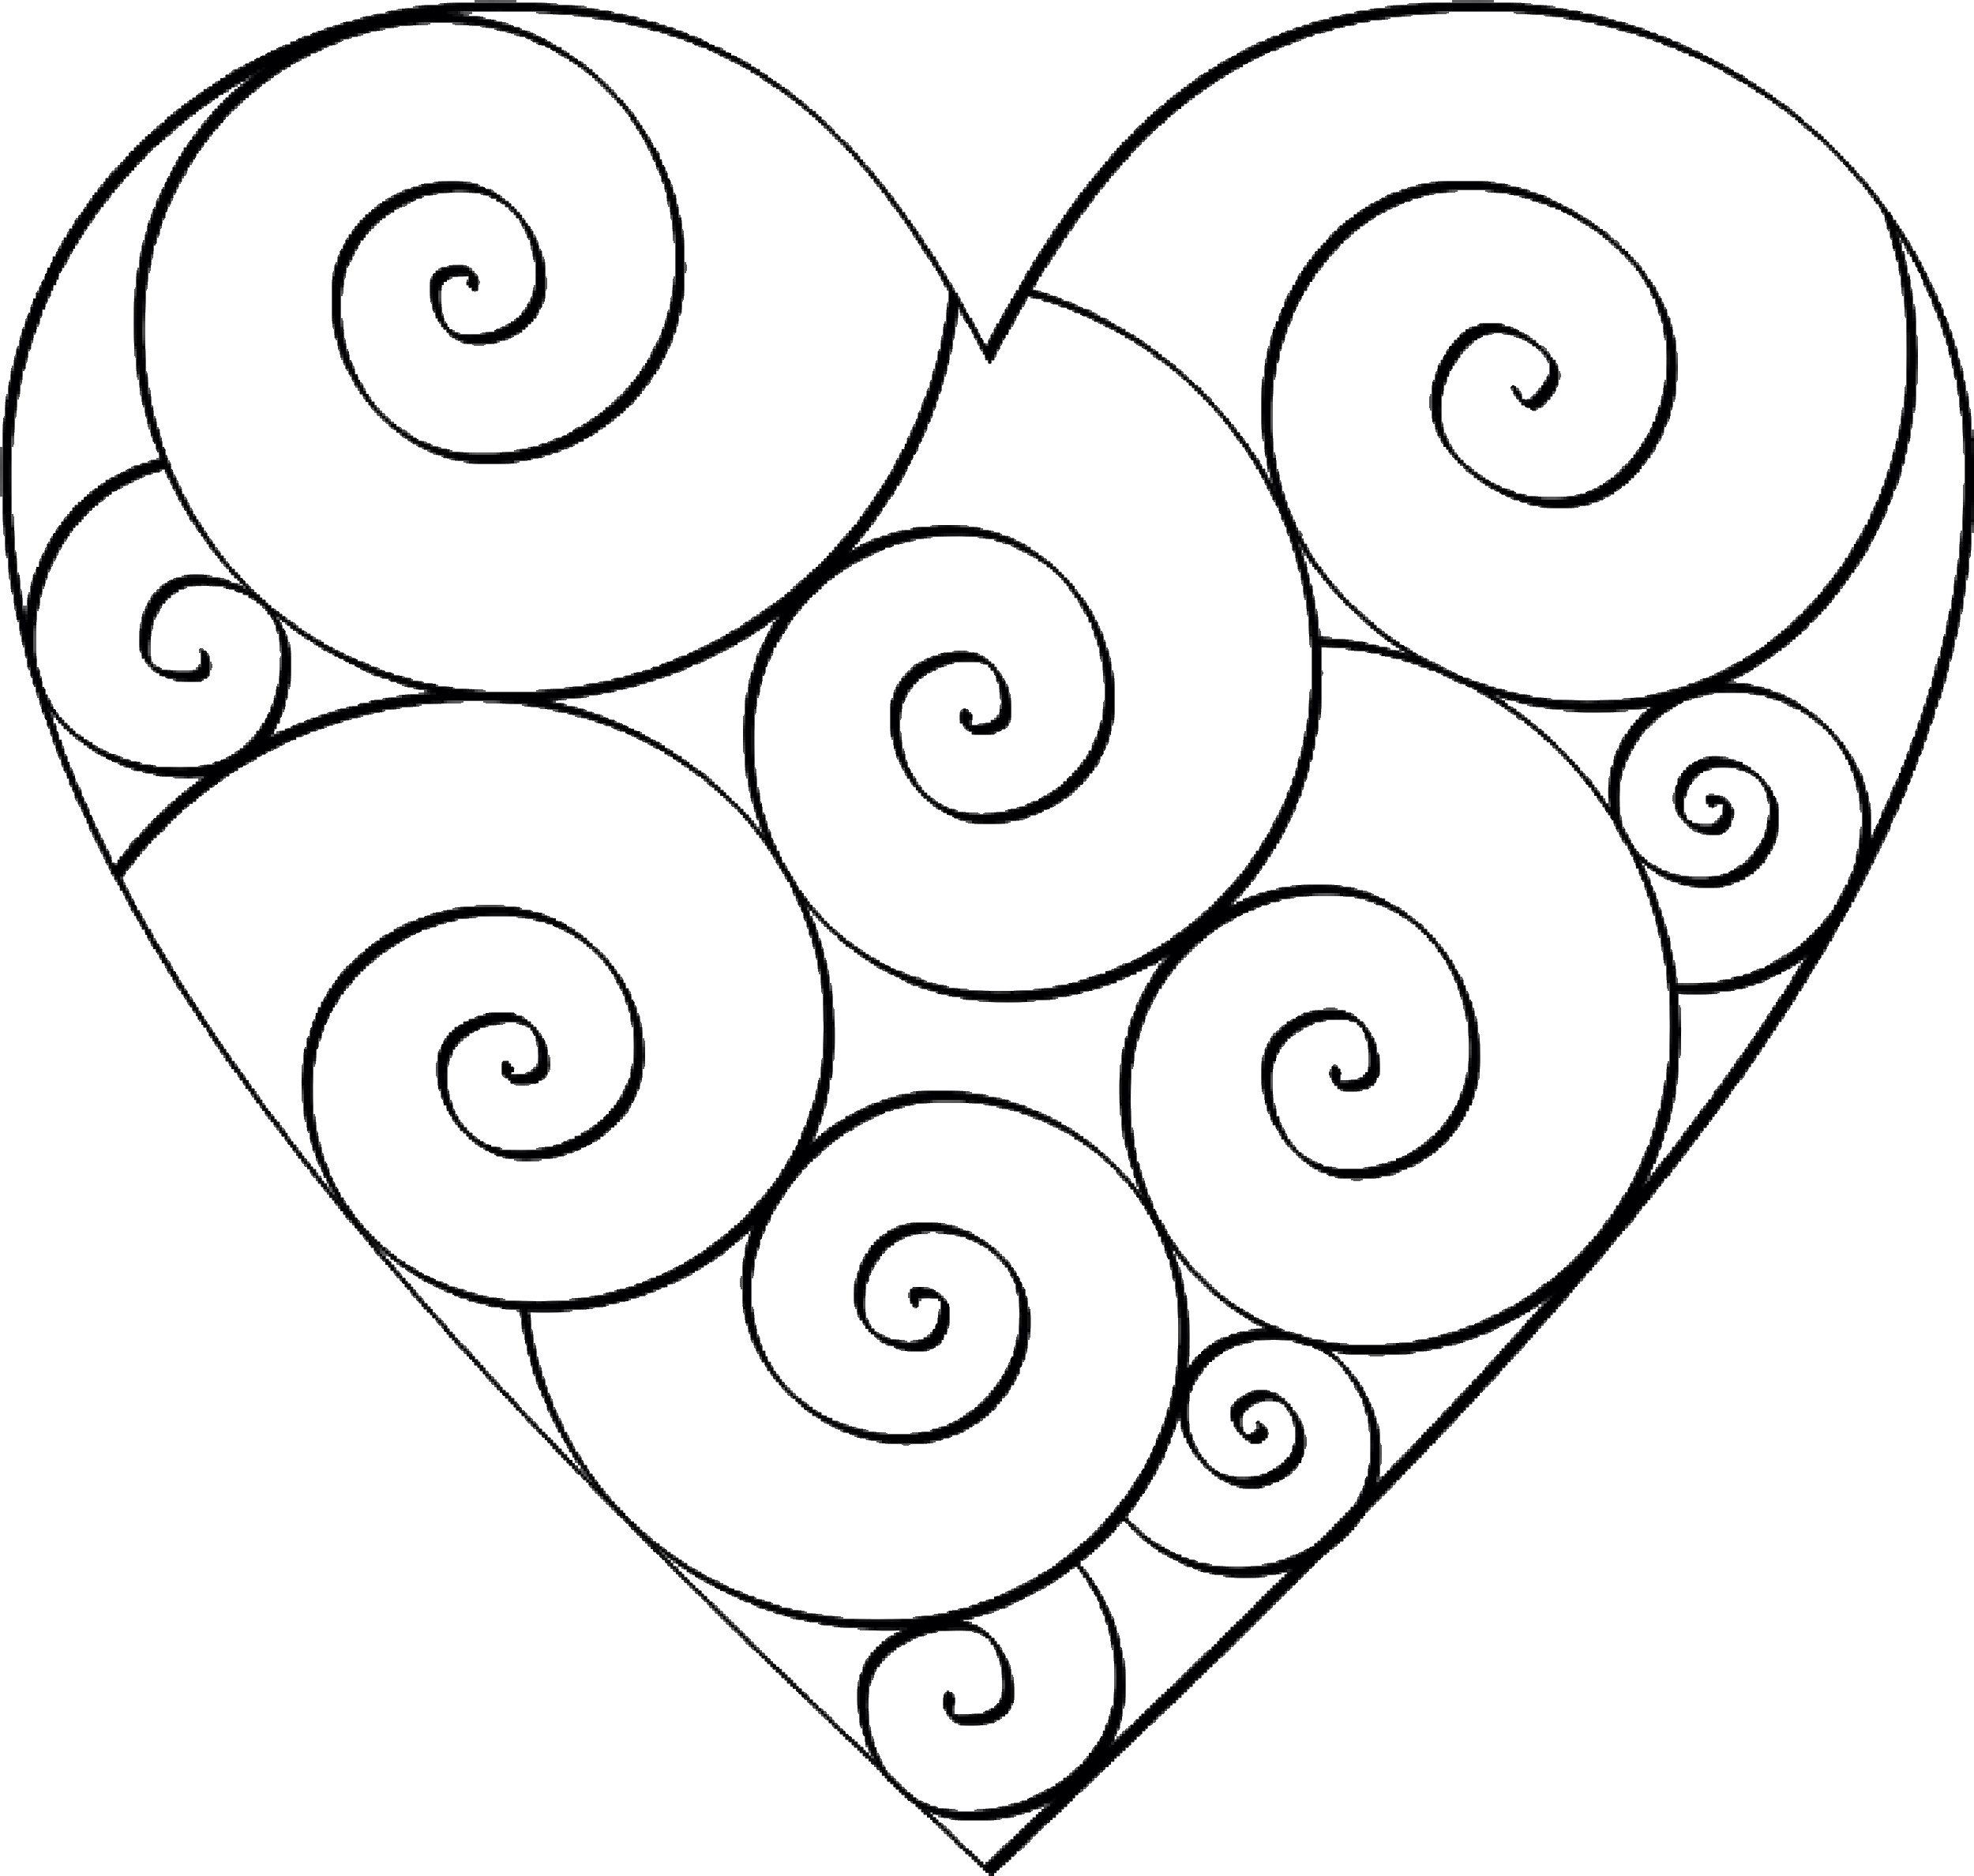 hearts coloring page free printable heart coloring pages for kids hearts page coloring 1 1